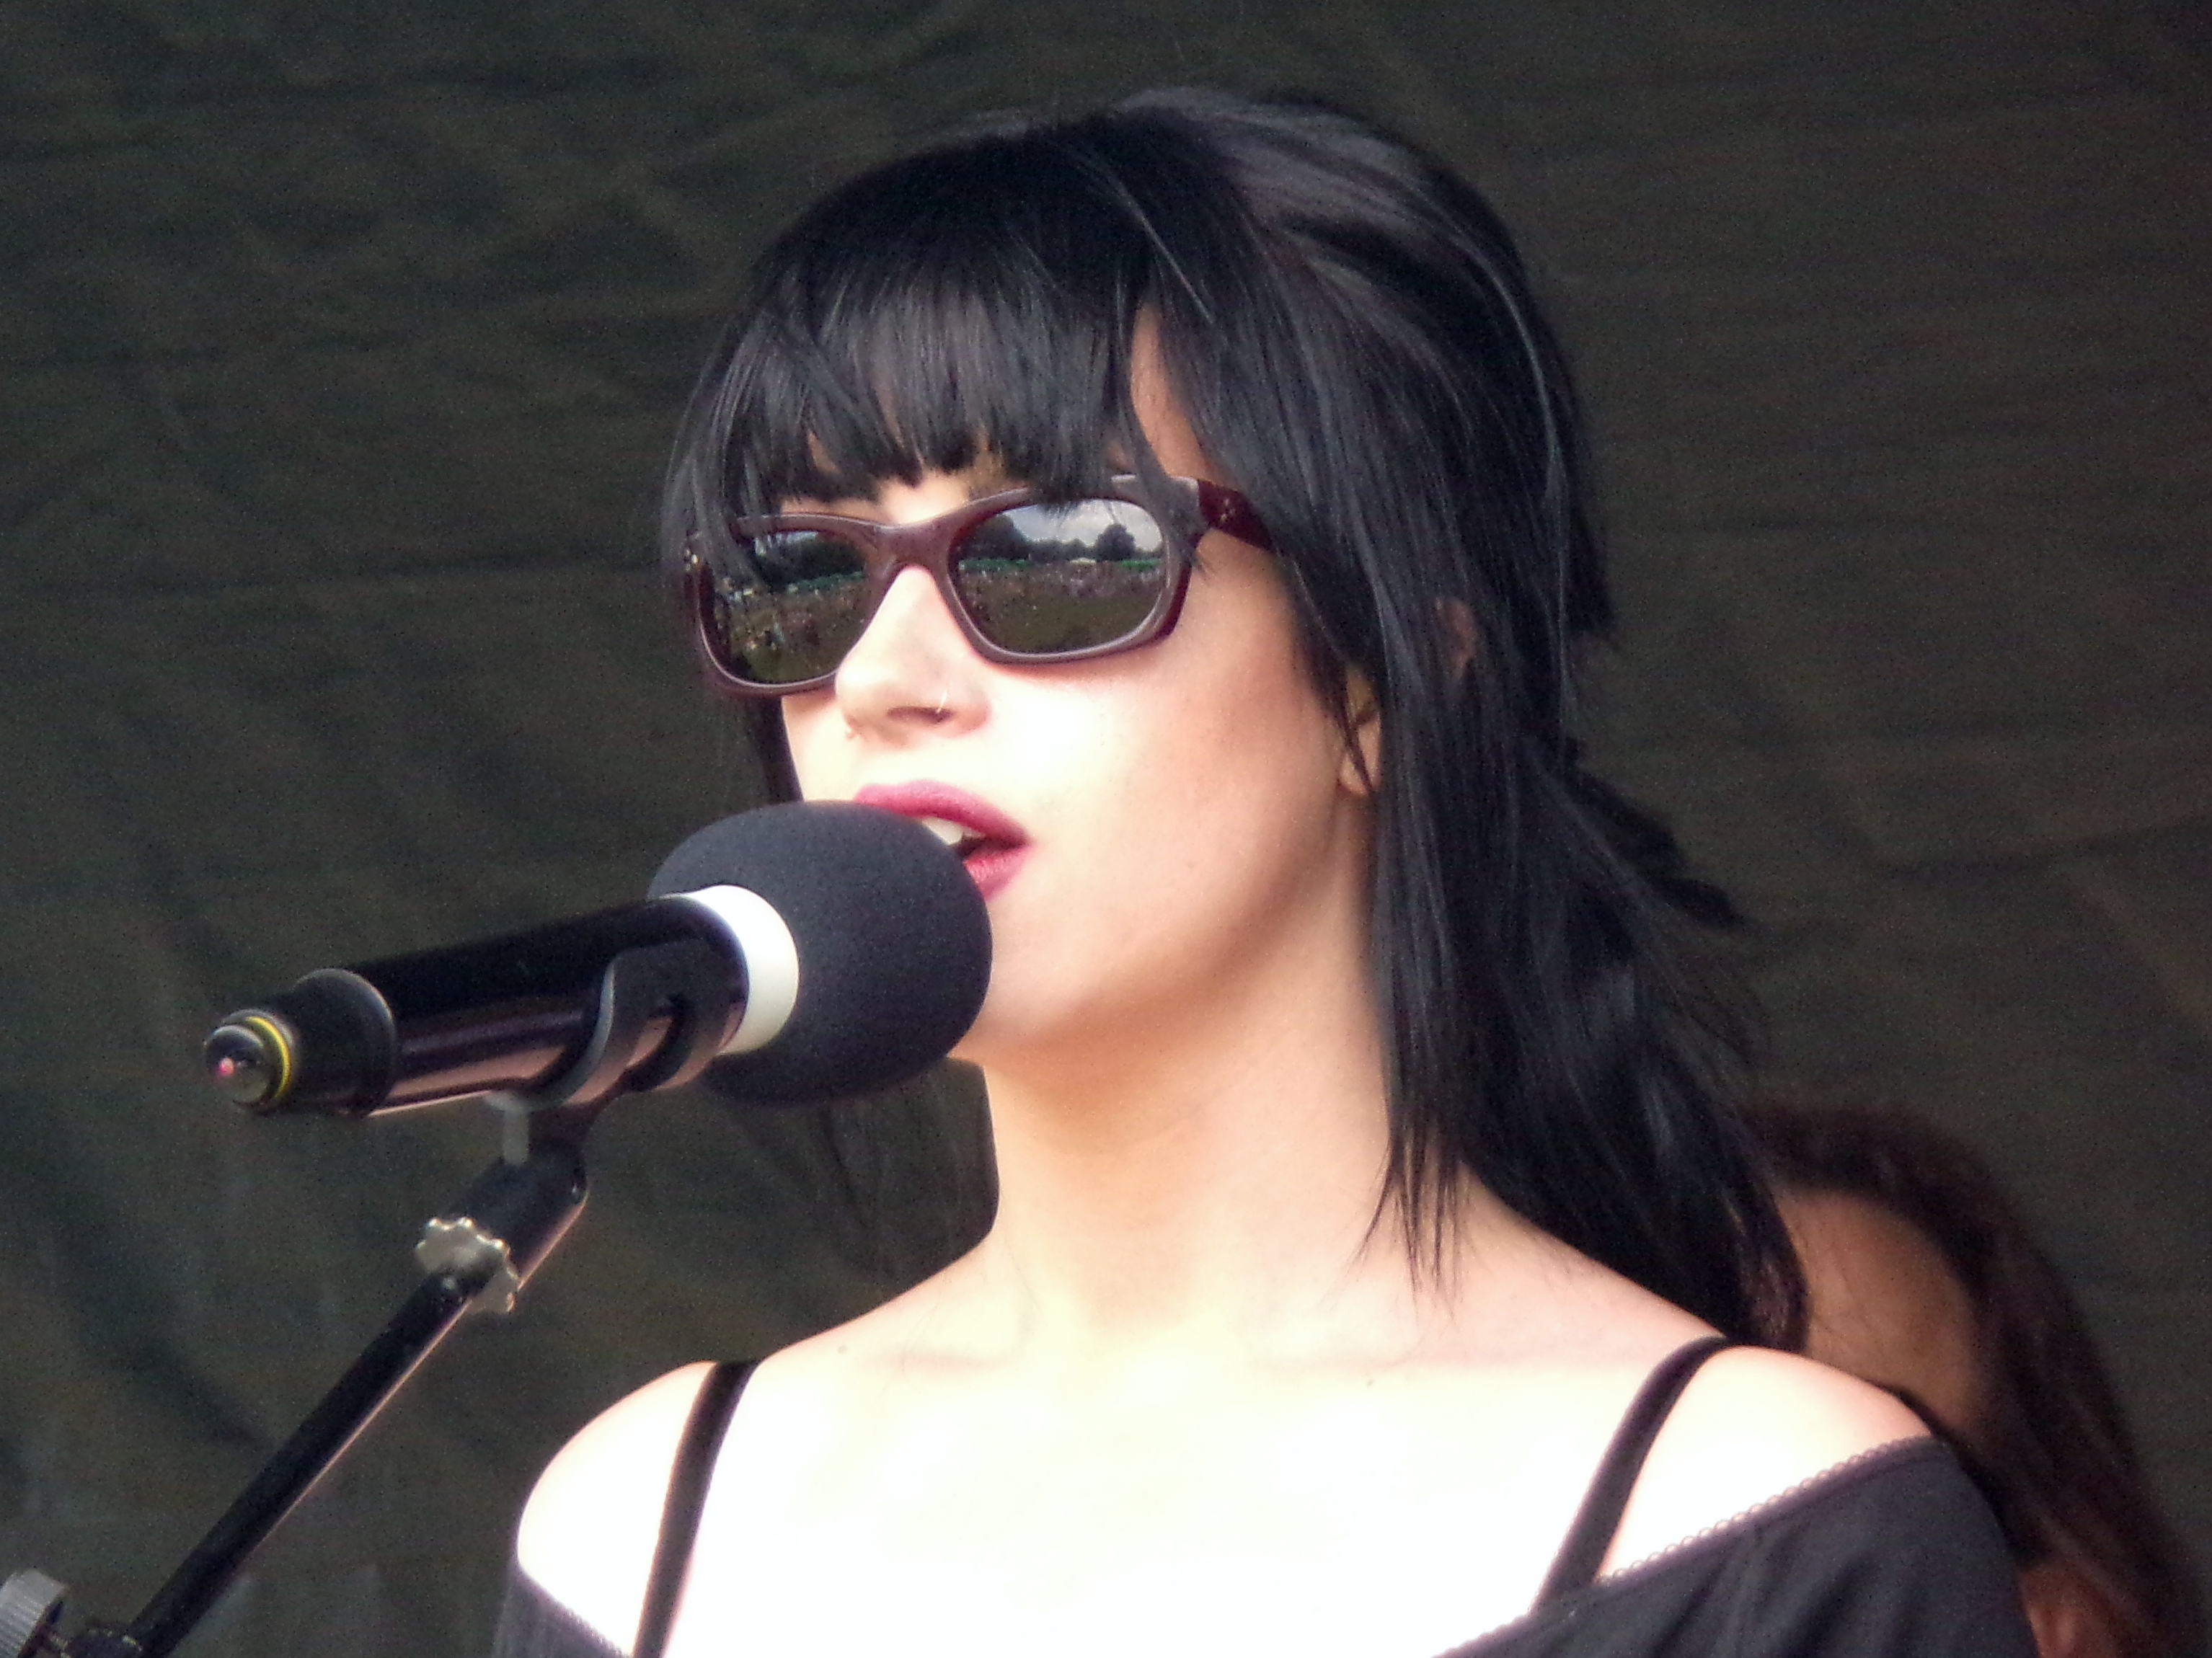 singer with sunglasses 3